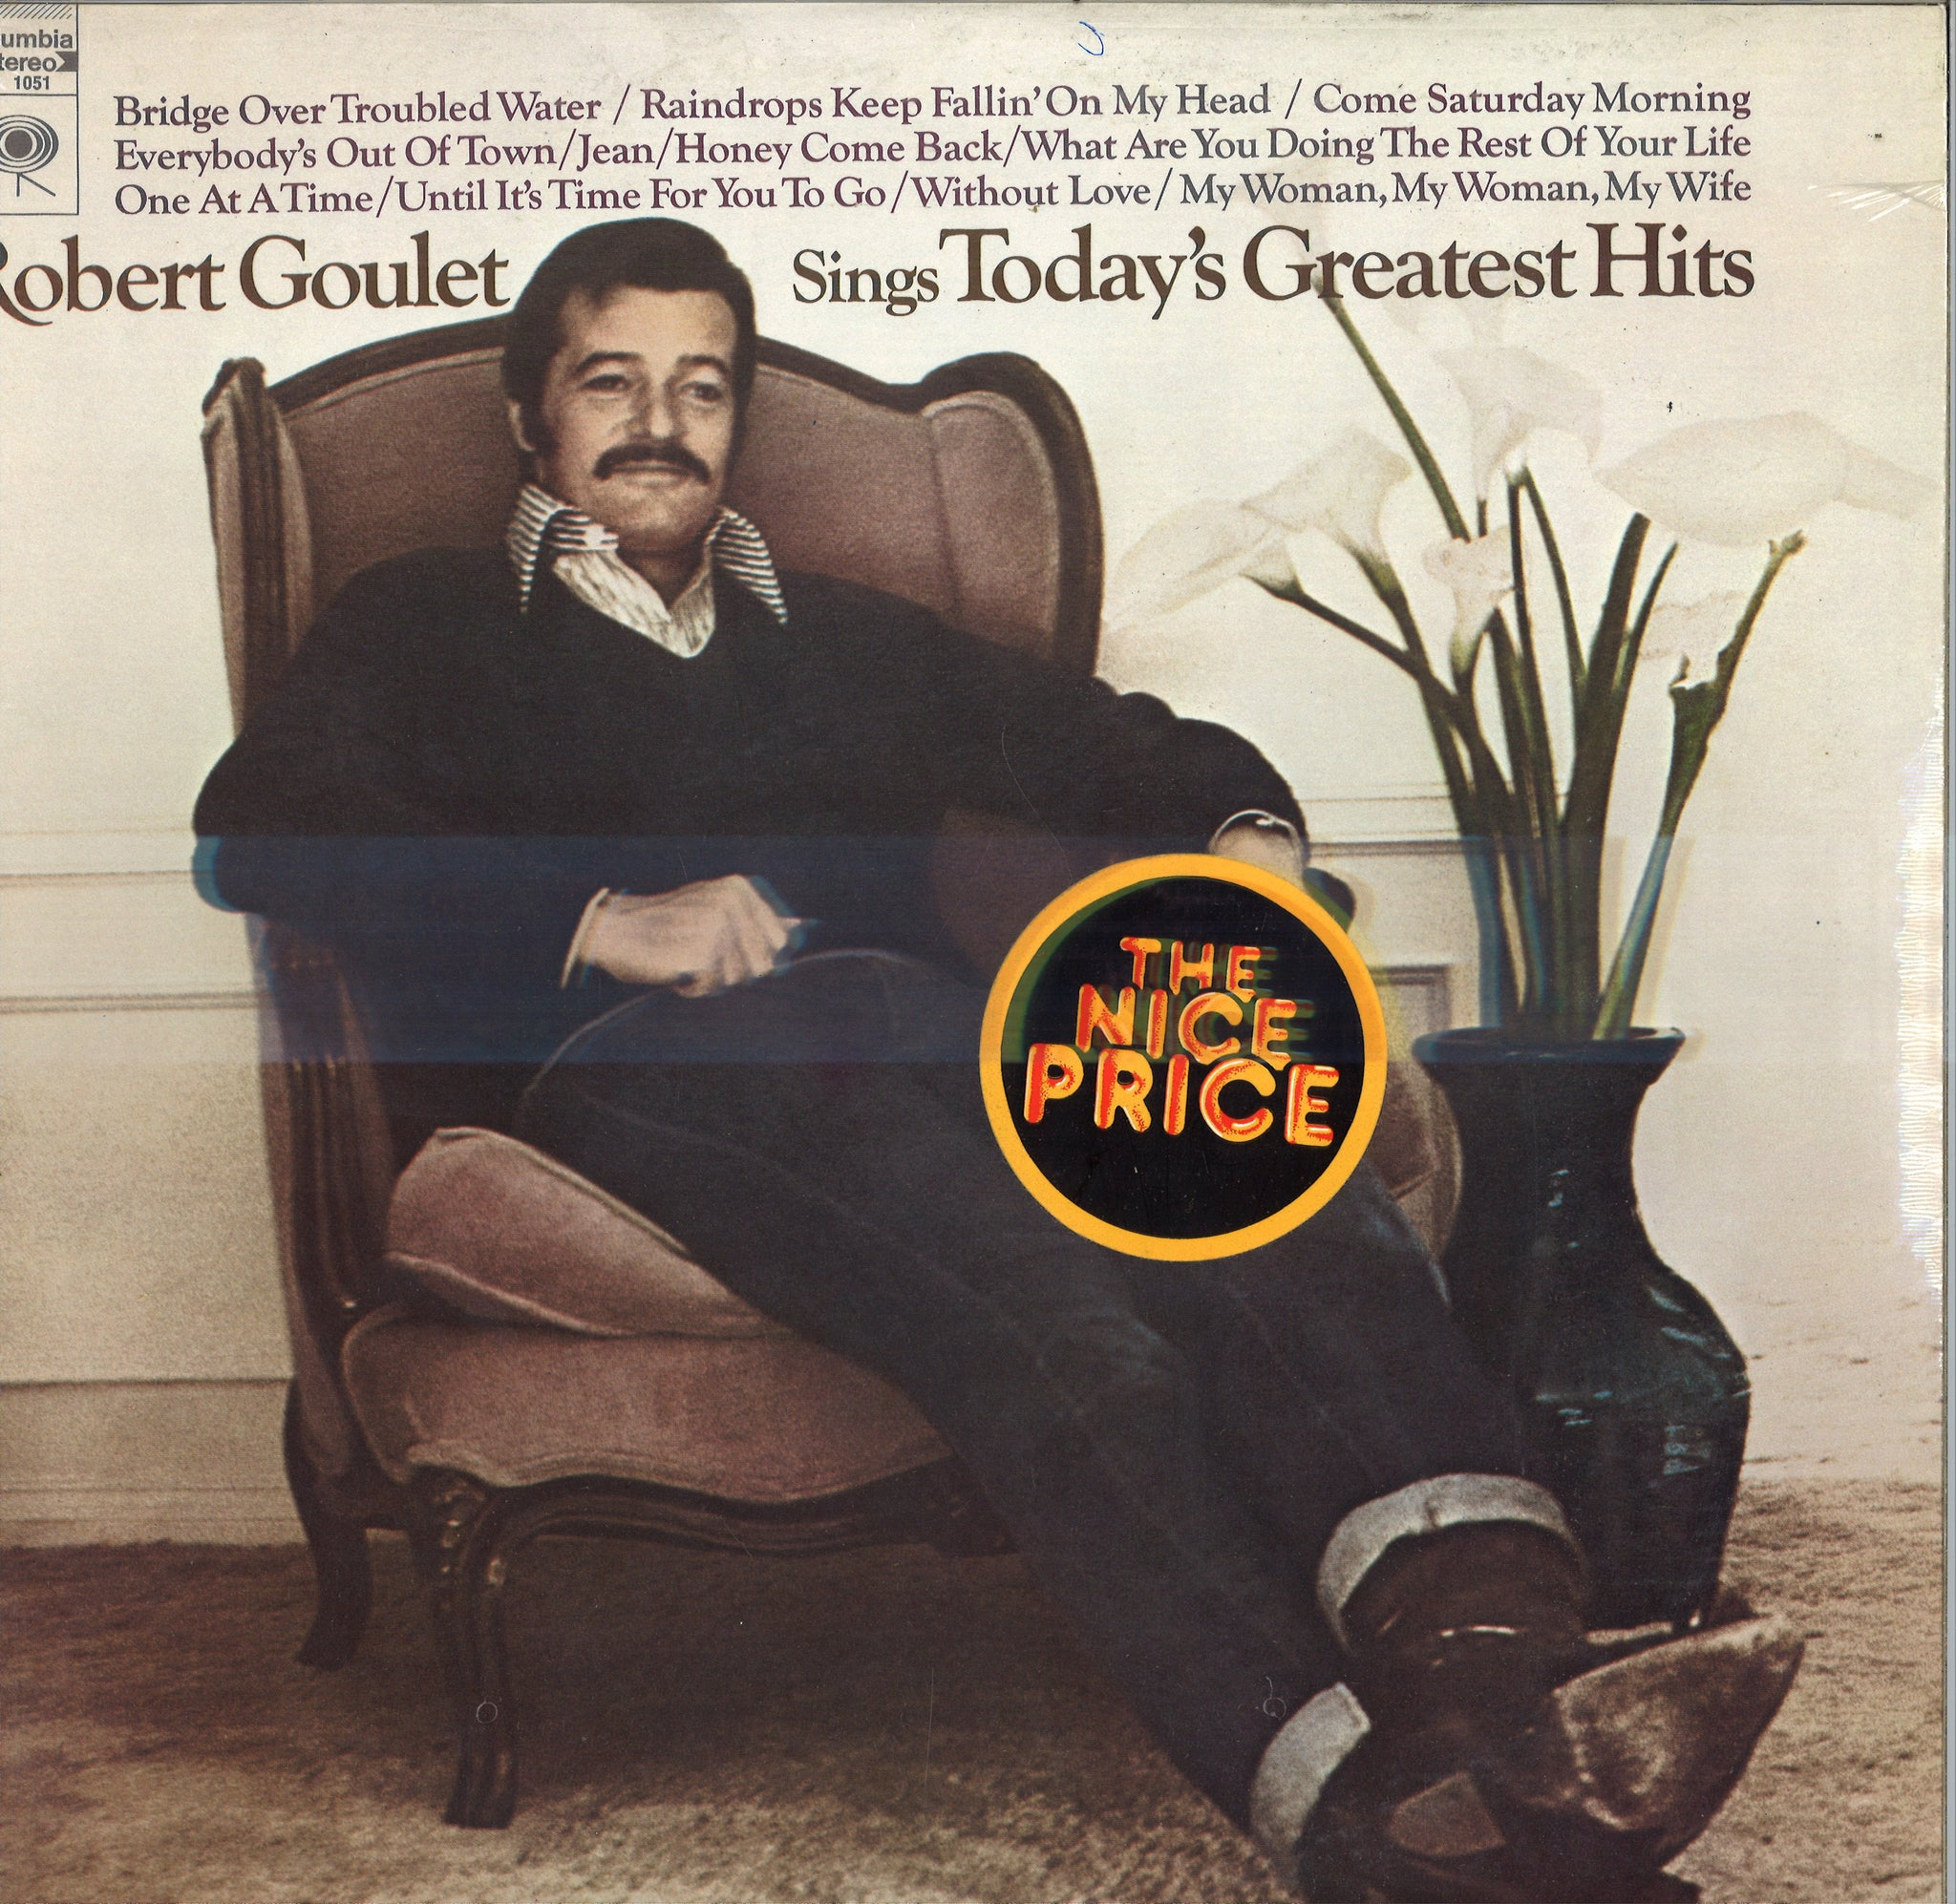 Robert Goulet Sings Today's Greatest Hits